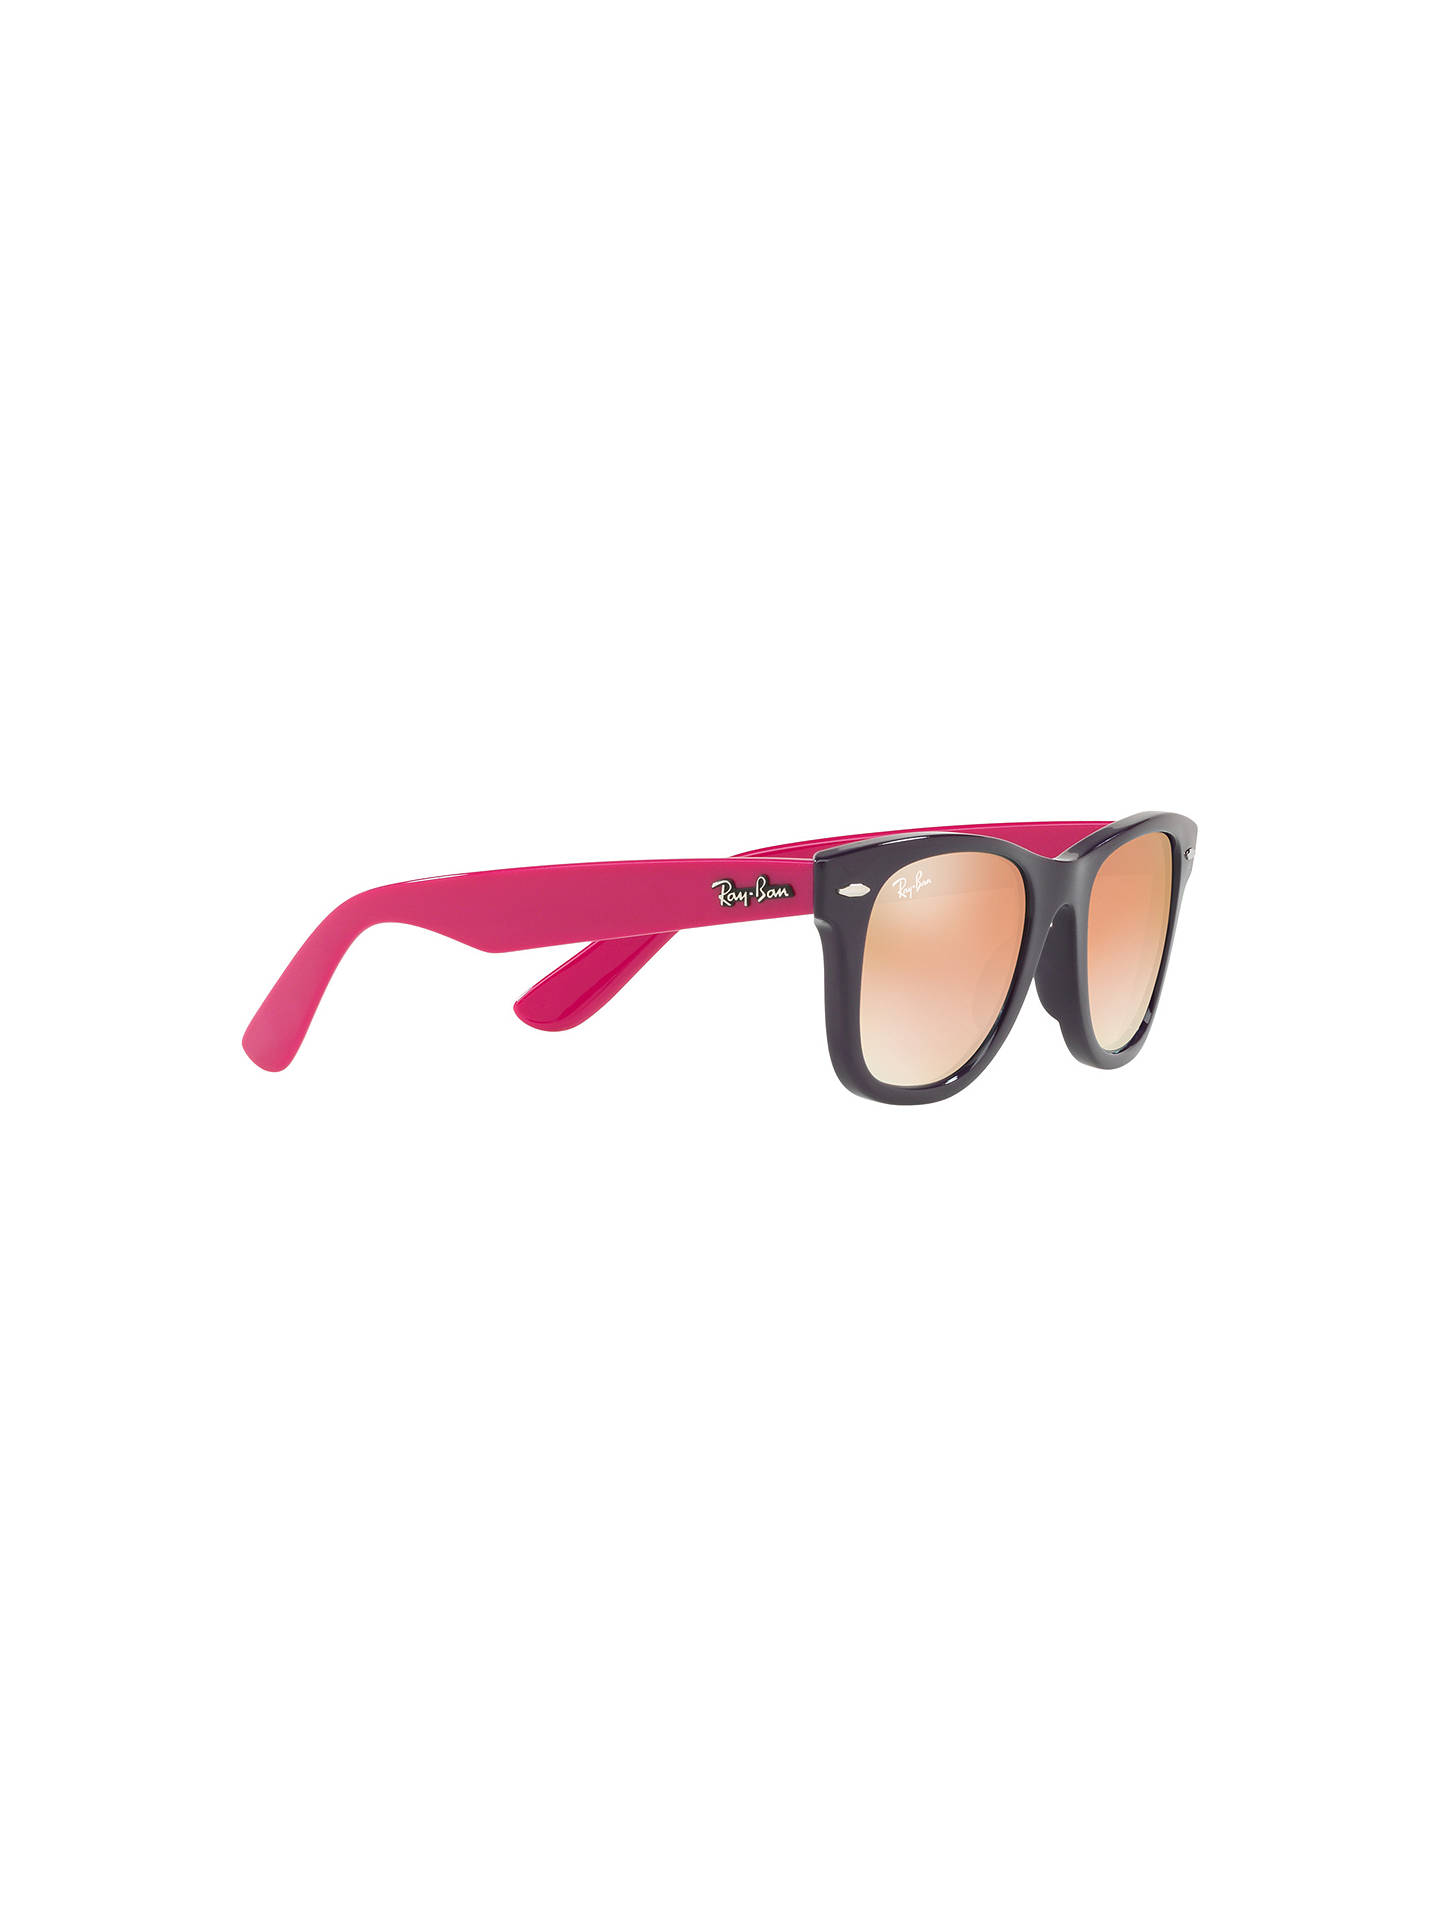 BuyRay-Ban Junior RJ9066S Wayfarer Sunglasses, Multi/Mirror Orange Online at johnlewis.com